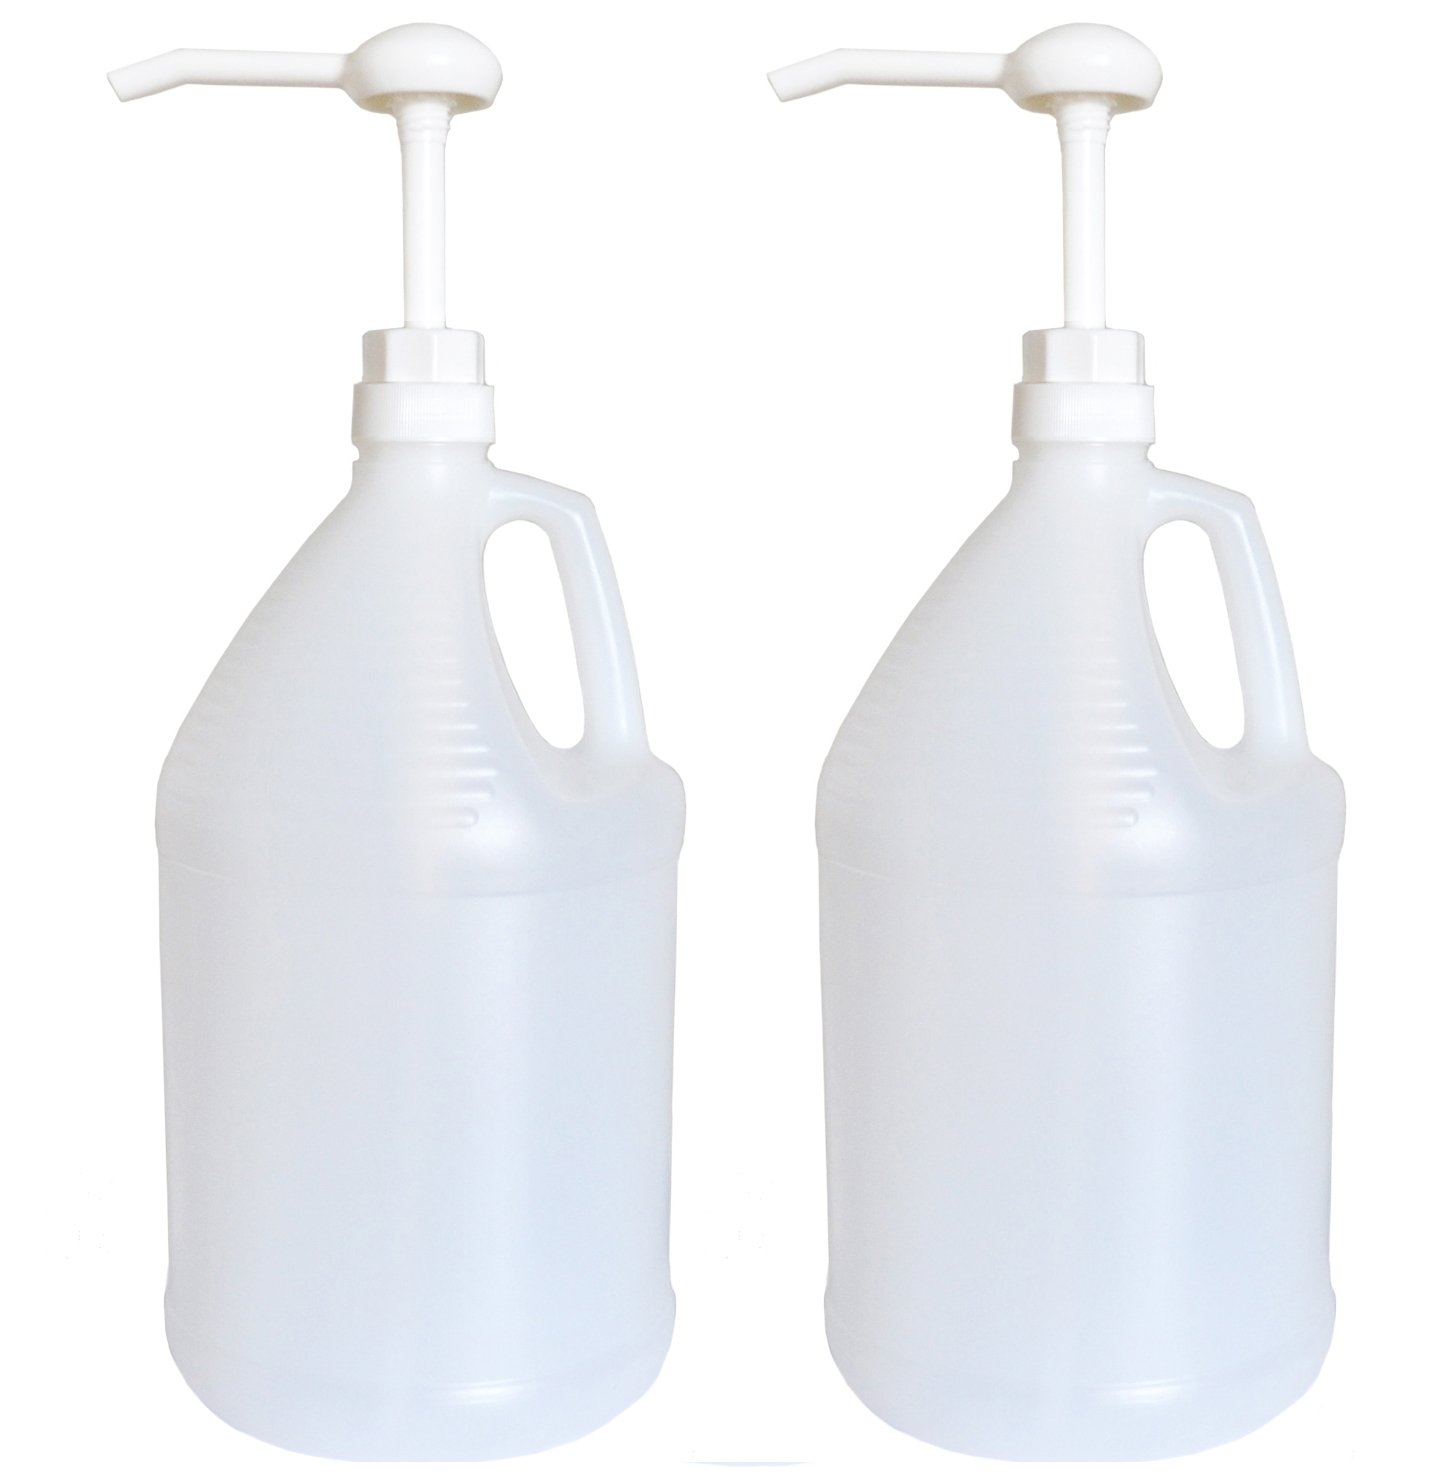 Gallon Jug with Pump, Pack of 2 by nicebottles